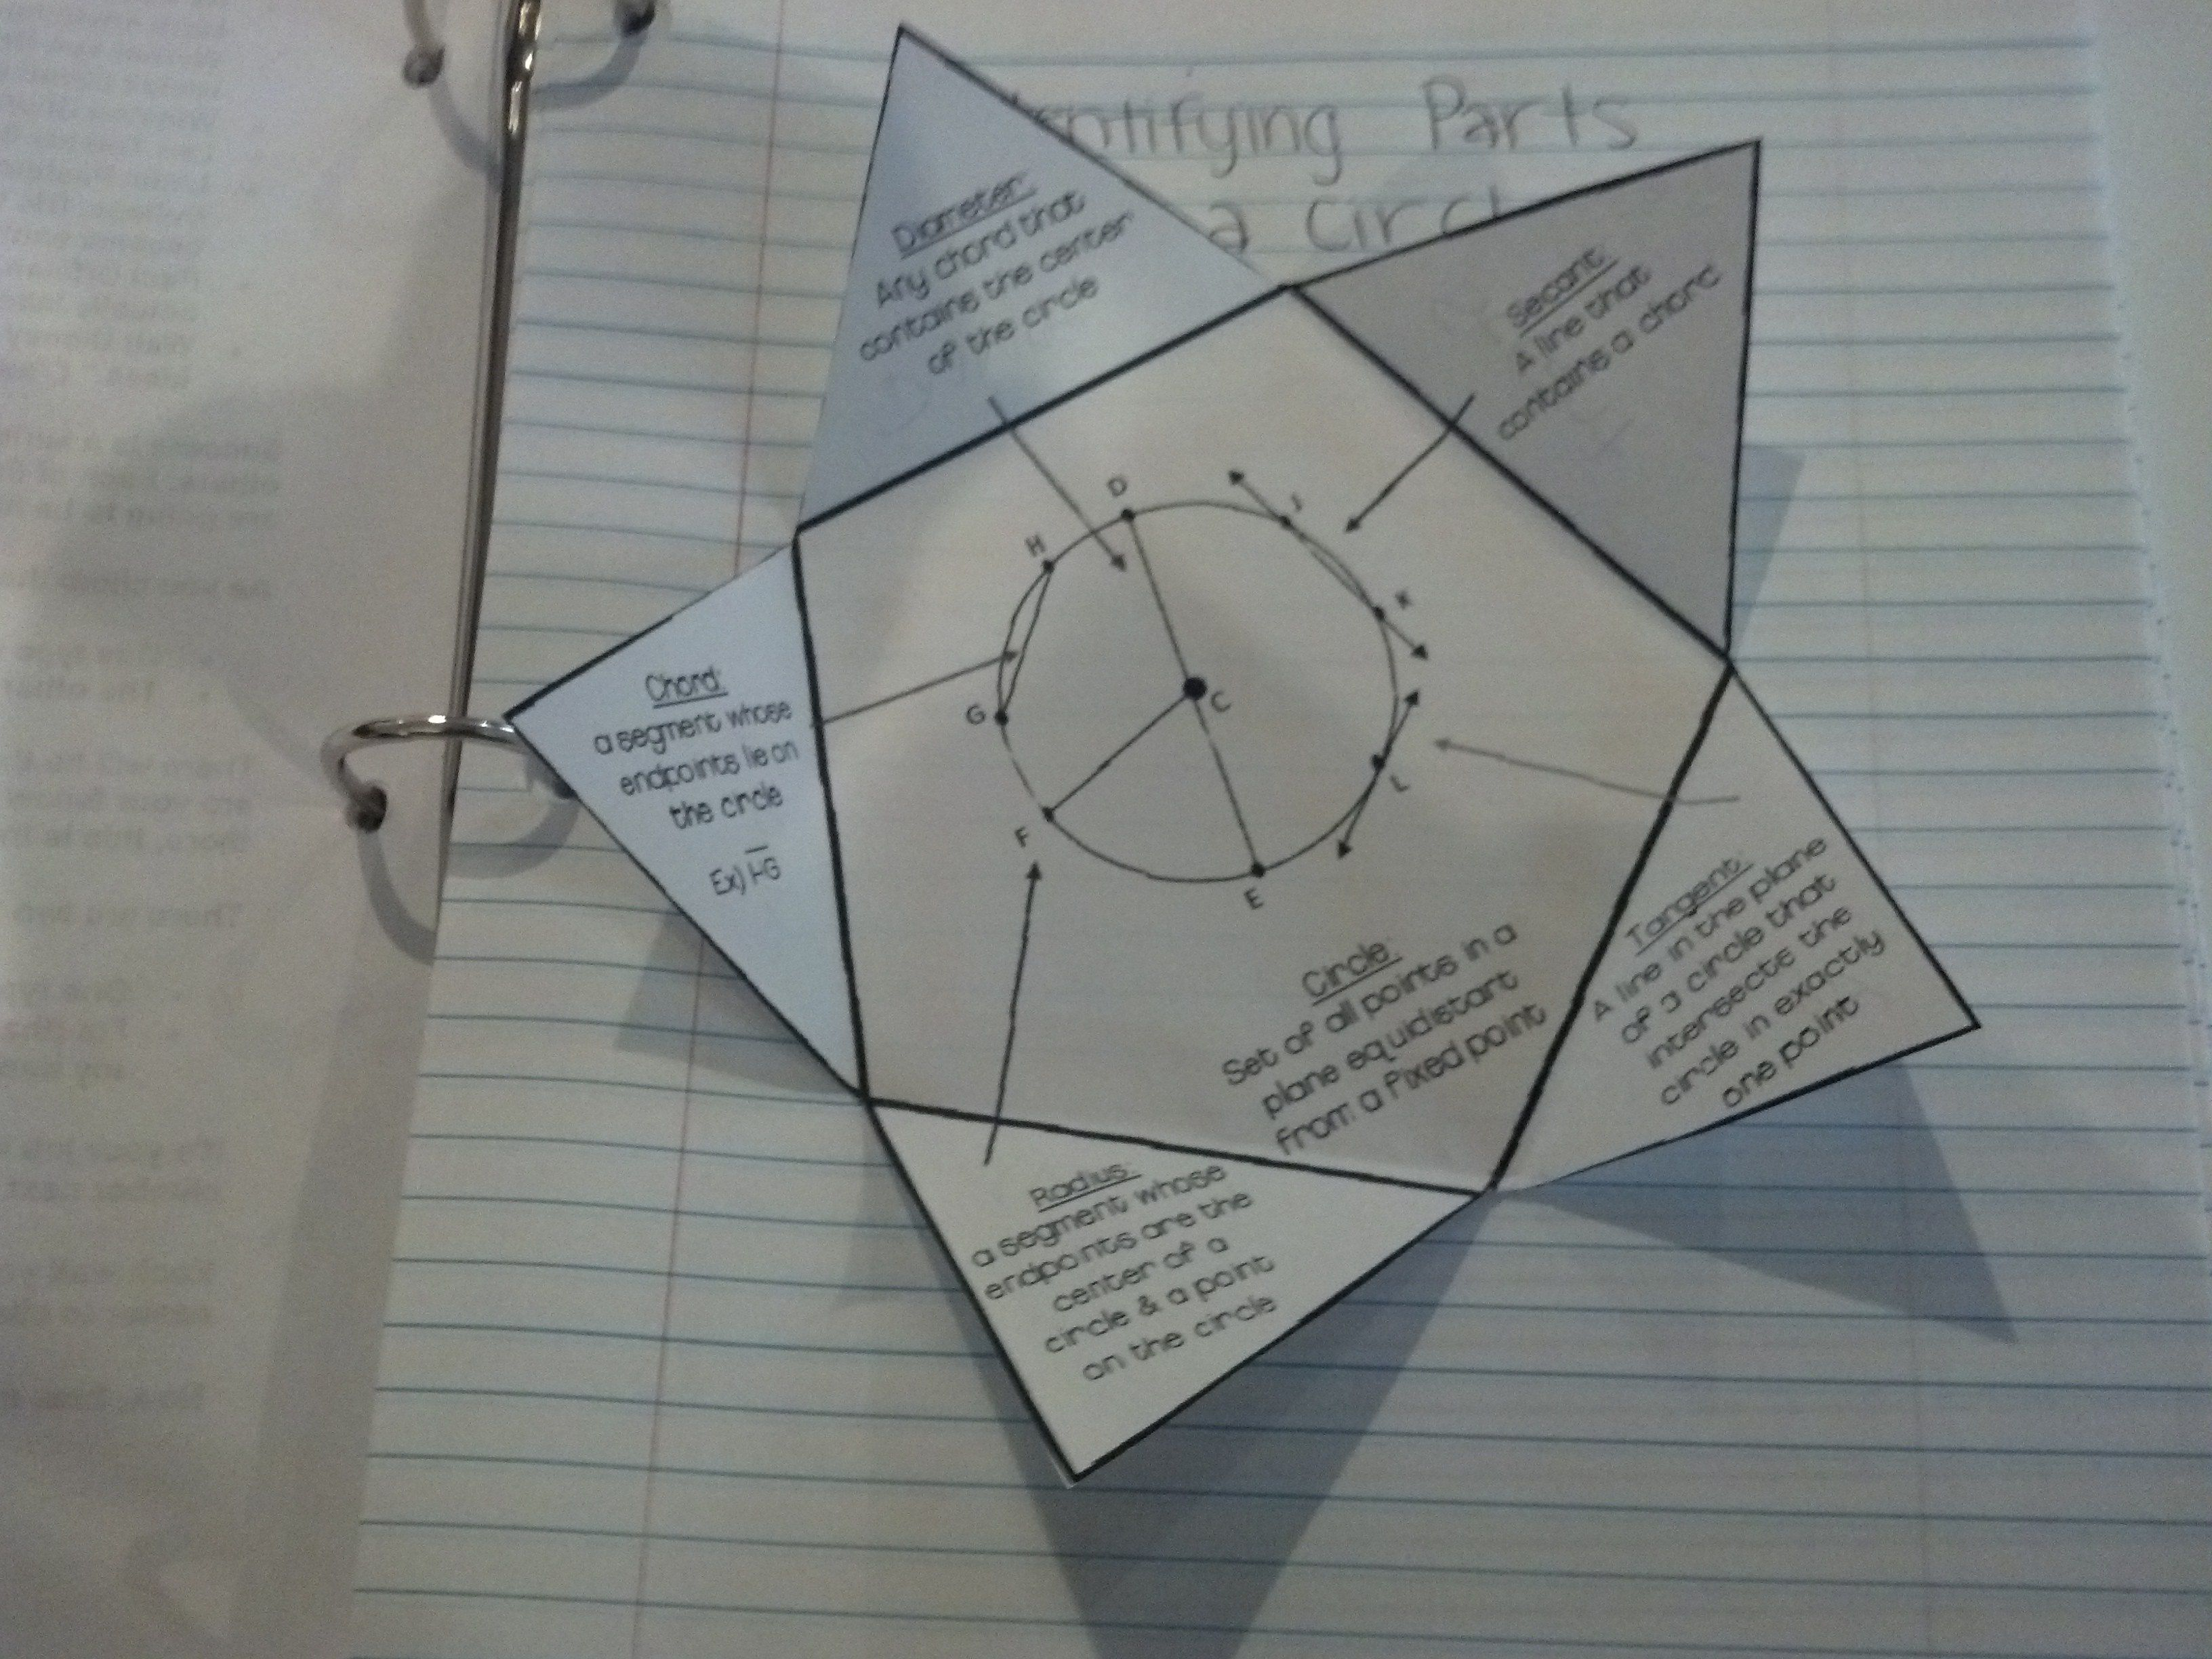 Parts Of A Circle Questions And Answers